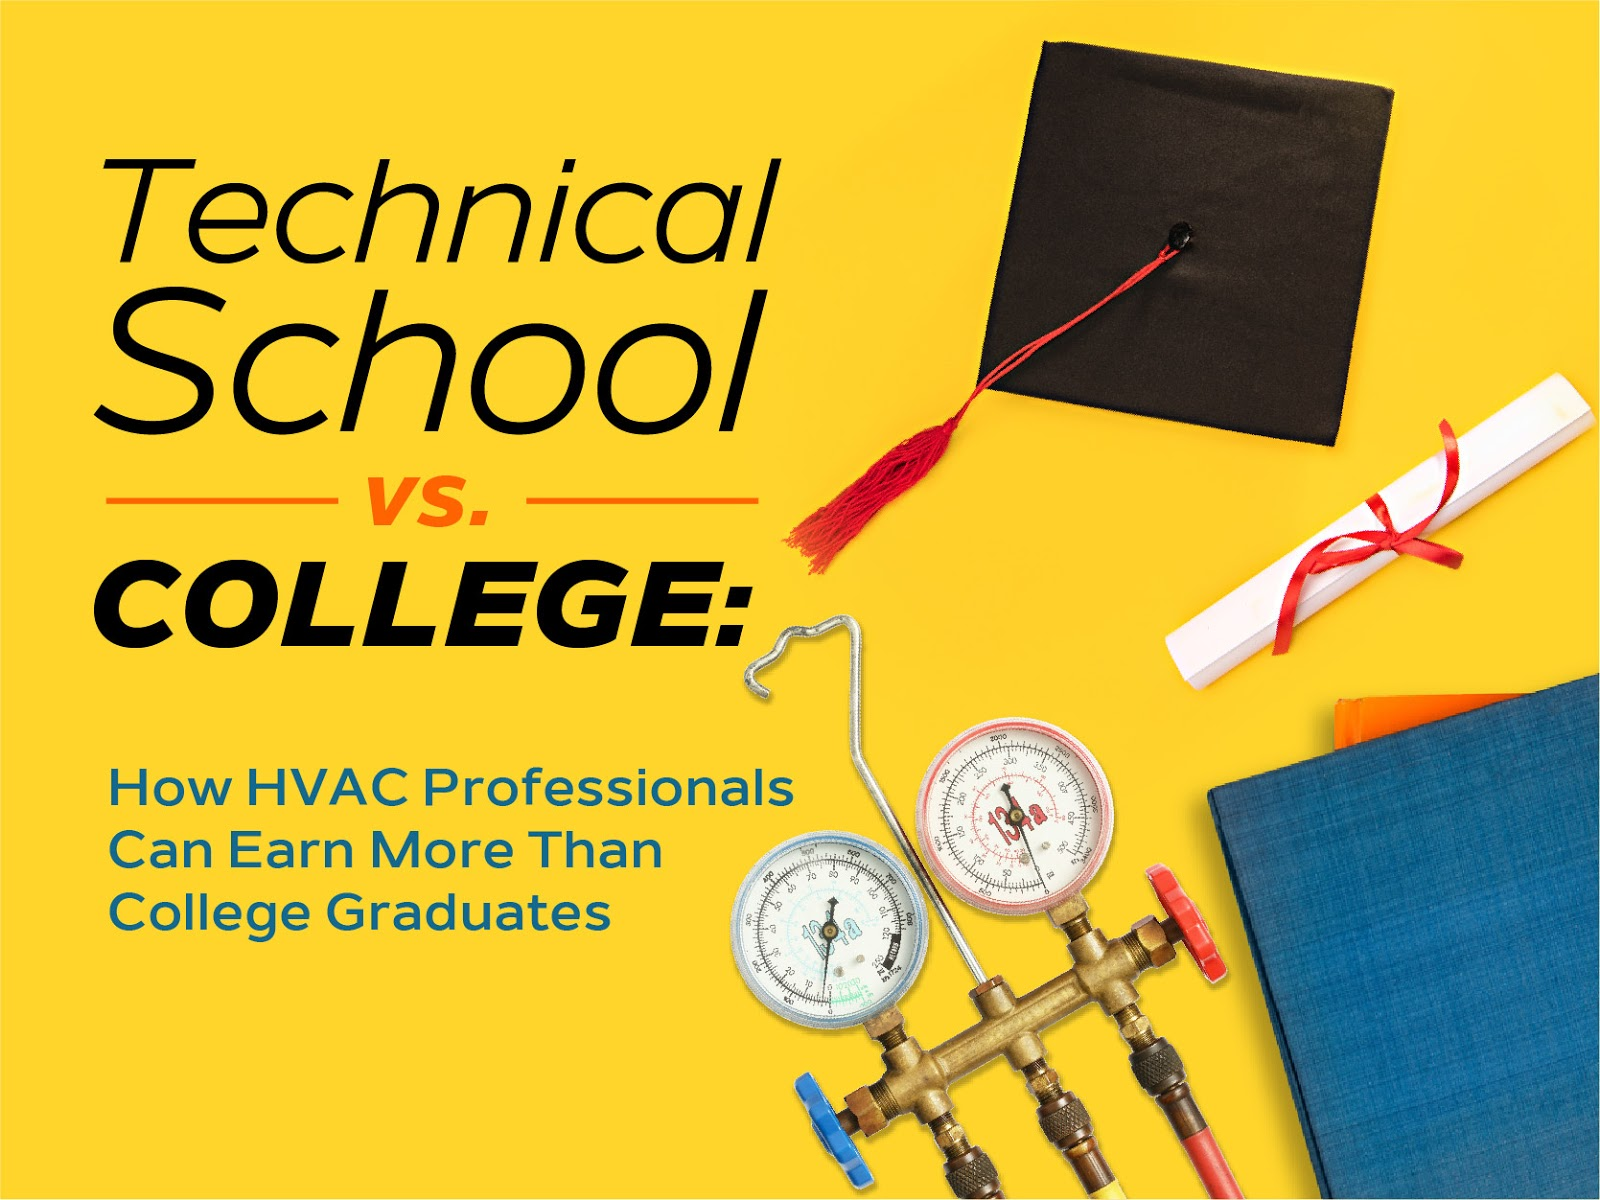 Technical School vs. College: How HVAC Professionals Can Earn More Than College Graduates - HVAC.com